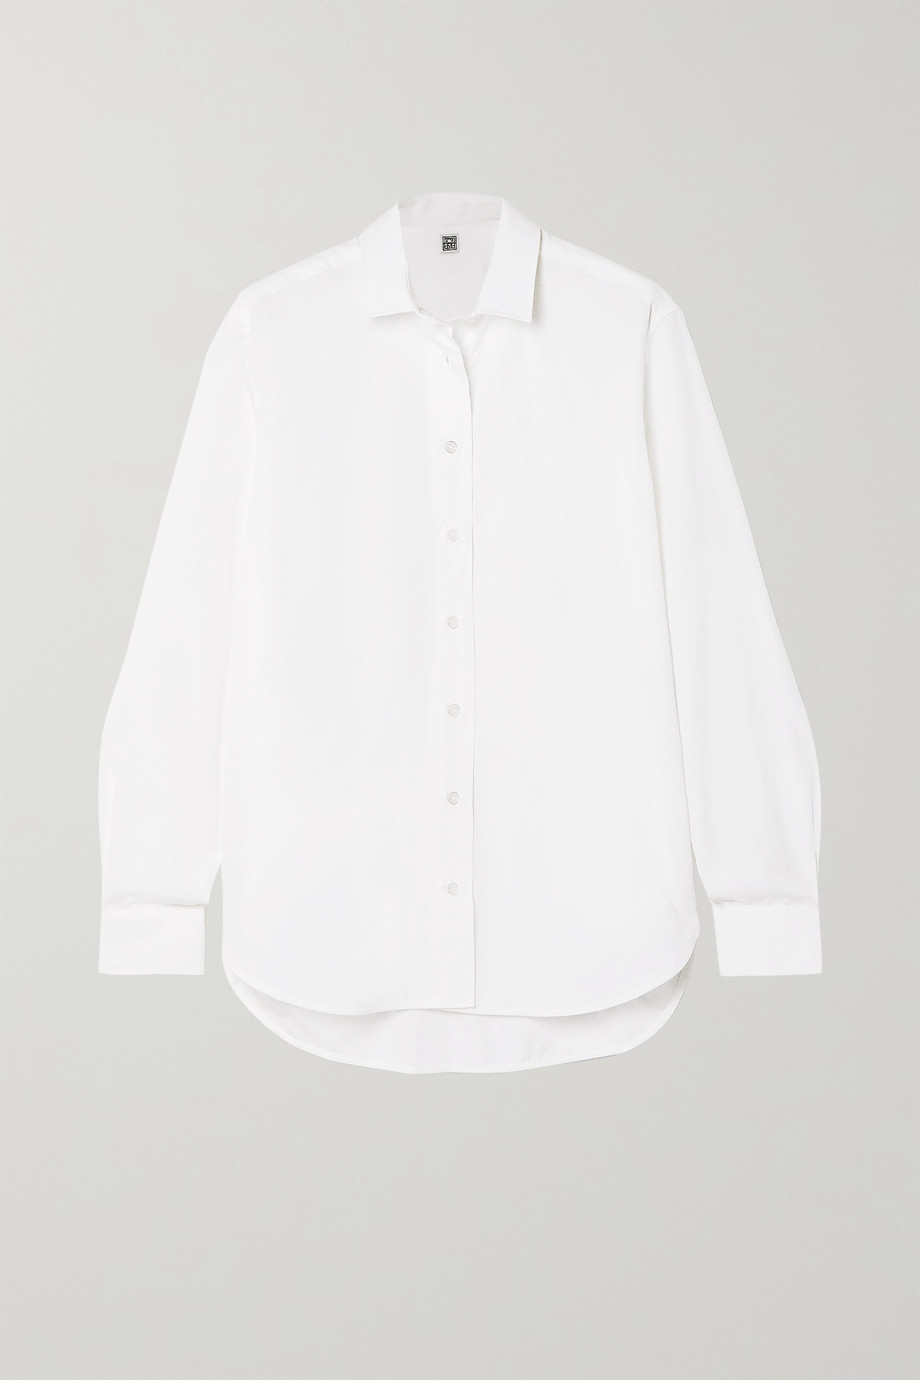 Totême Capri cotton-poplin shirt